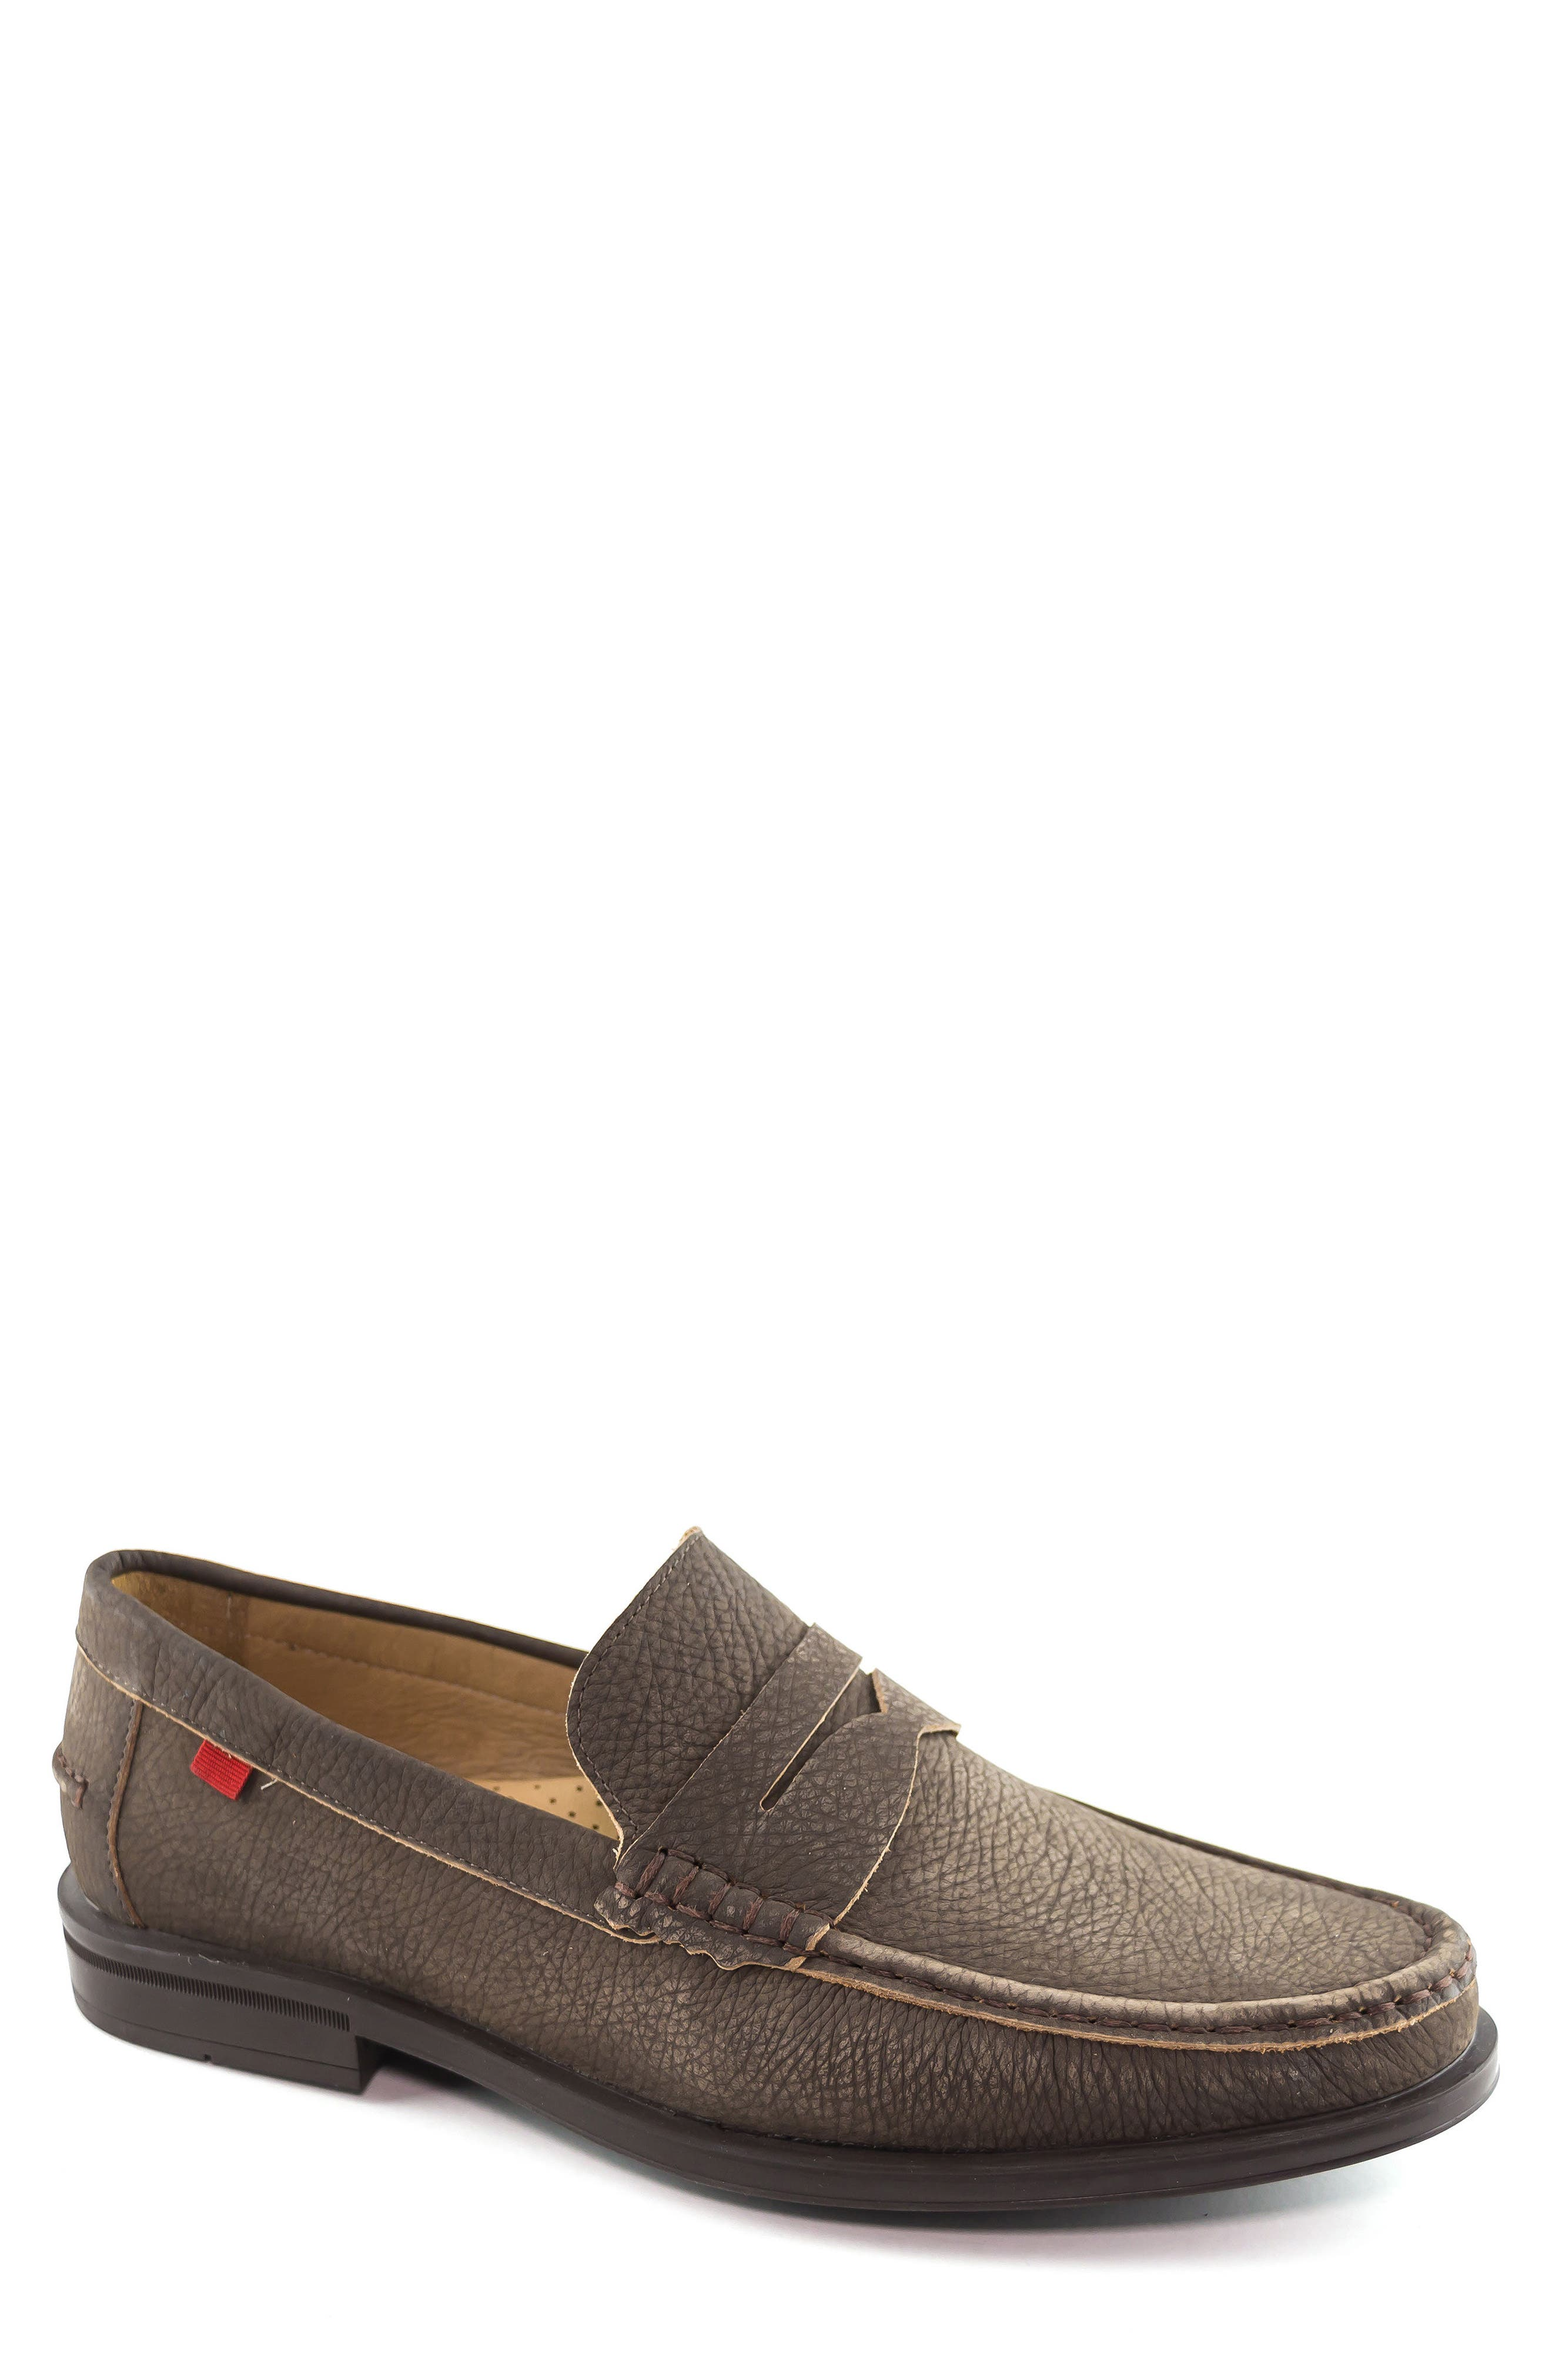 Cortland Penny Loafer,                             Main thumbnail 1, color,                             CAFE